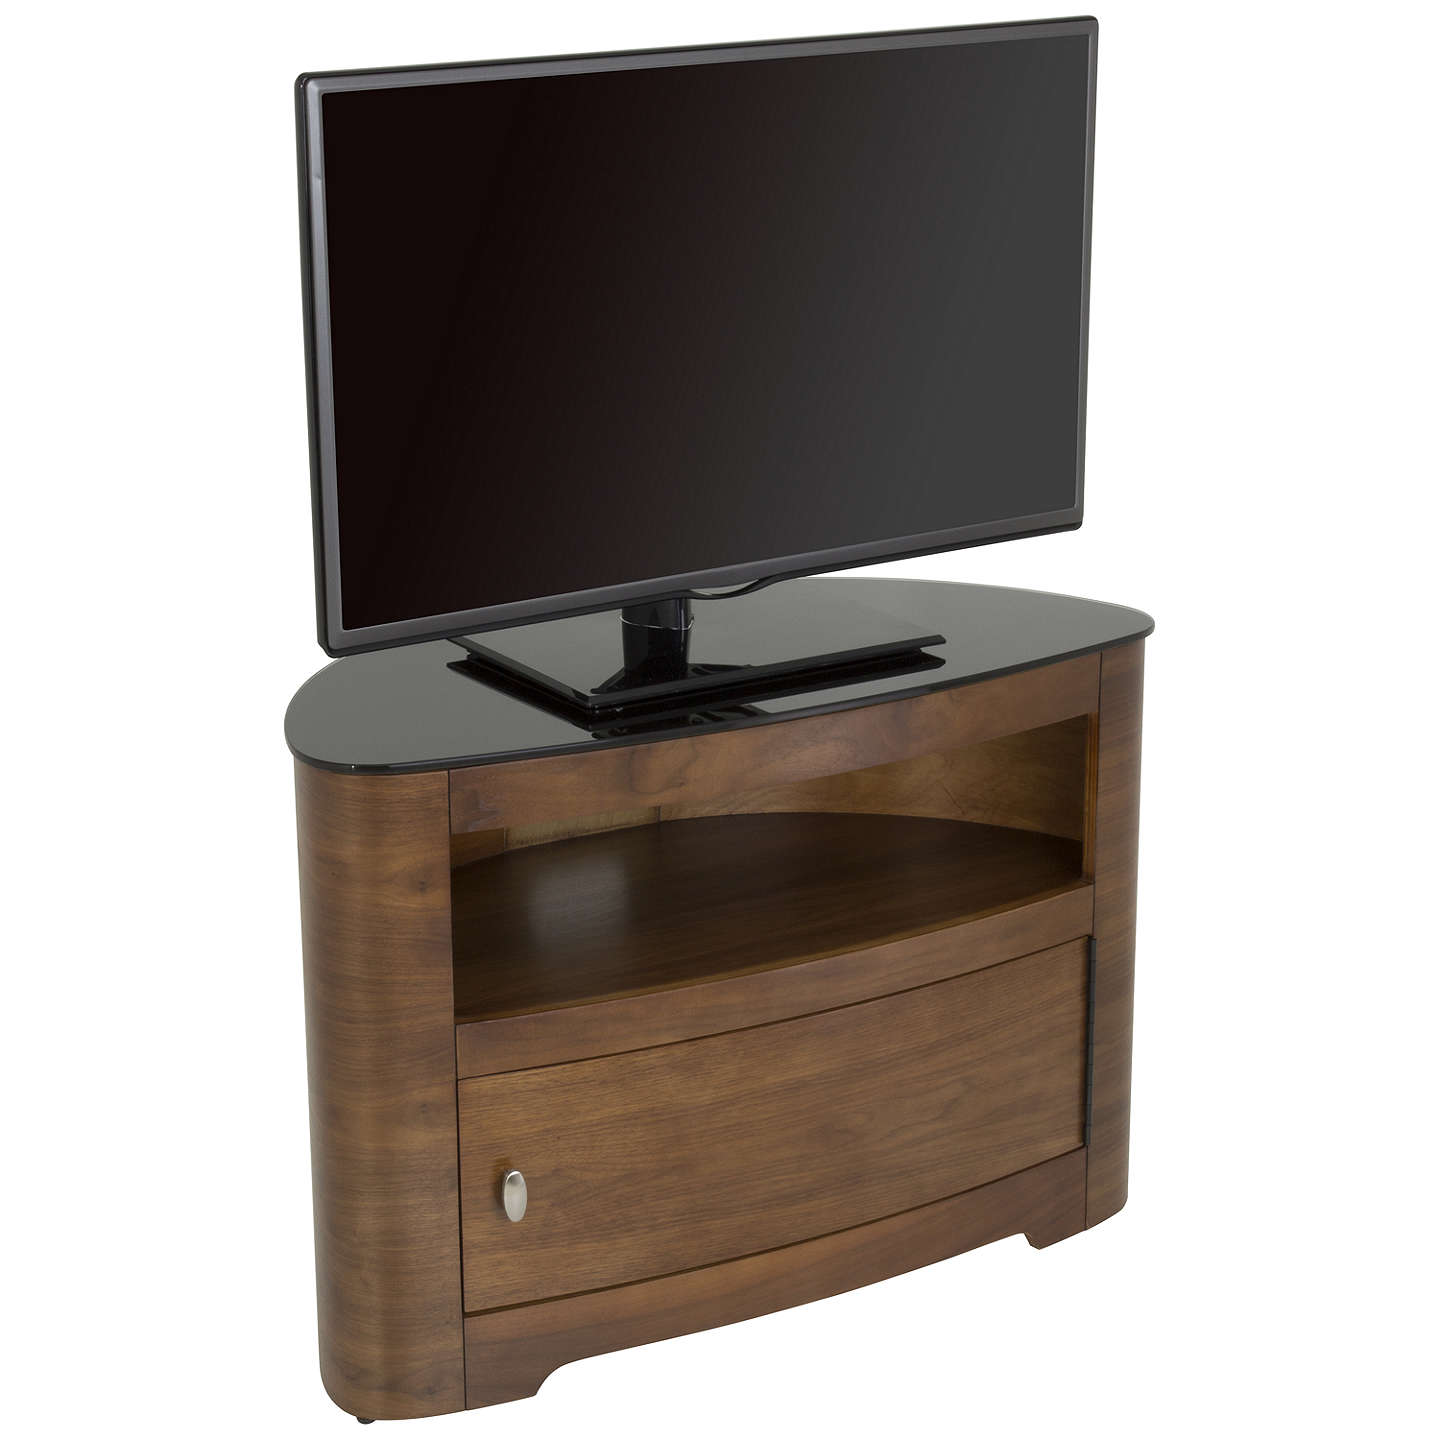 "BuyAVF Affinity Premium Blenheim 800 TV Stand for TVs up to 40"", Walnut Online at johnlewis.com"